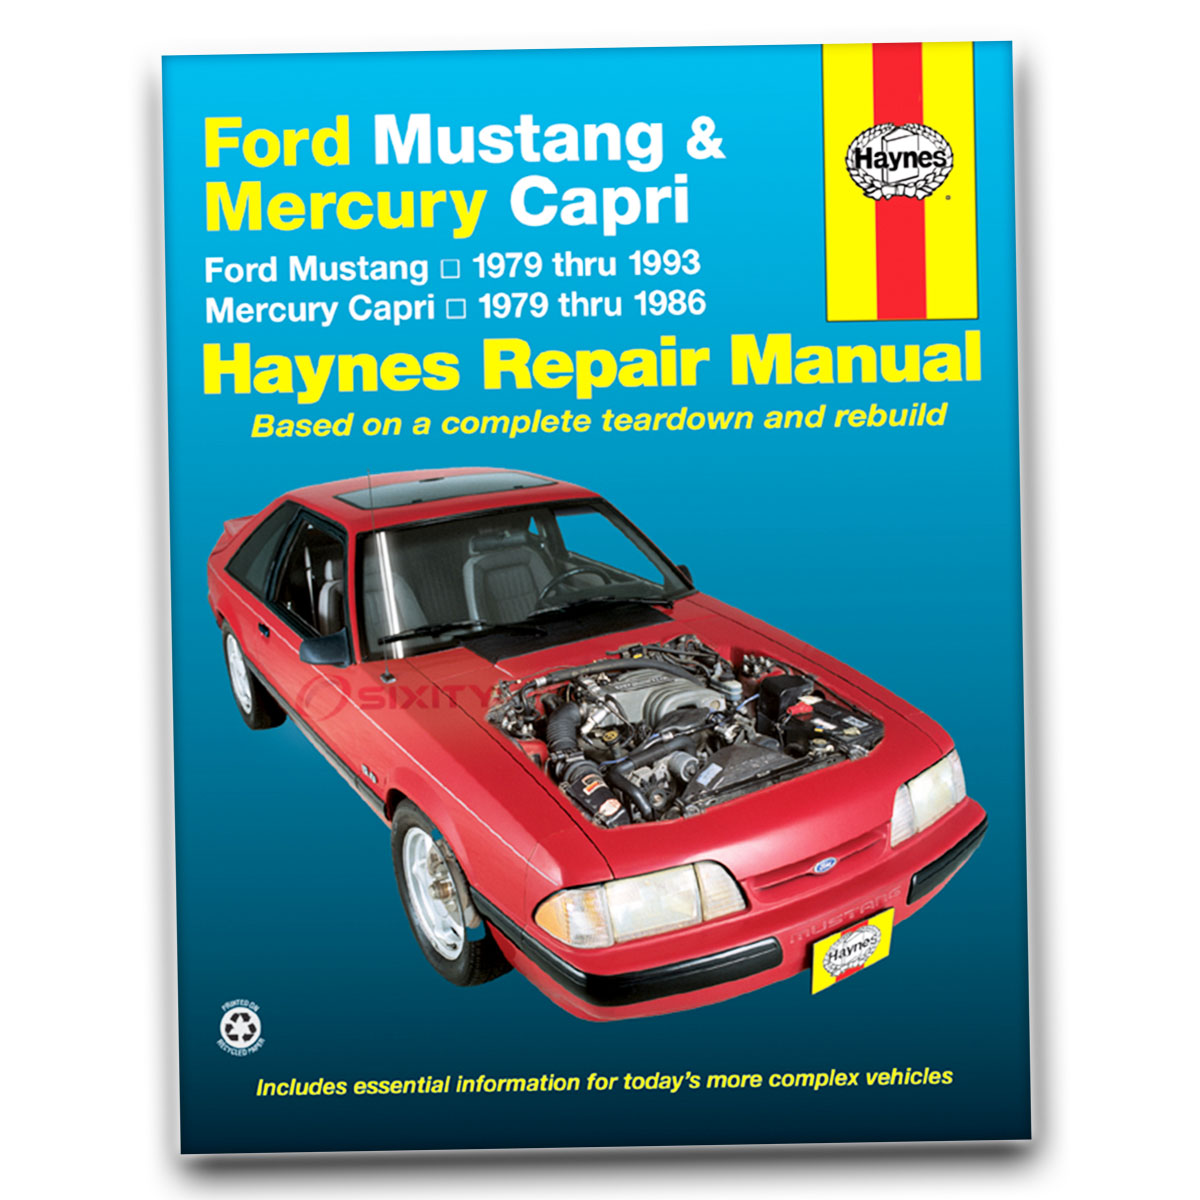 Haynes Repair Manual for Ford Mustang Cobra GT-350 20th Anniversary Ghia vn